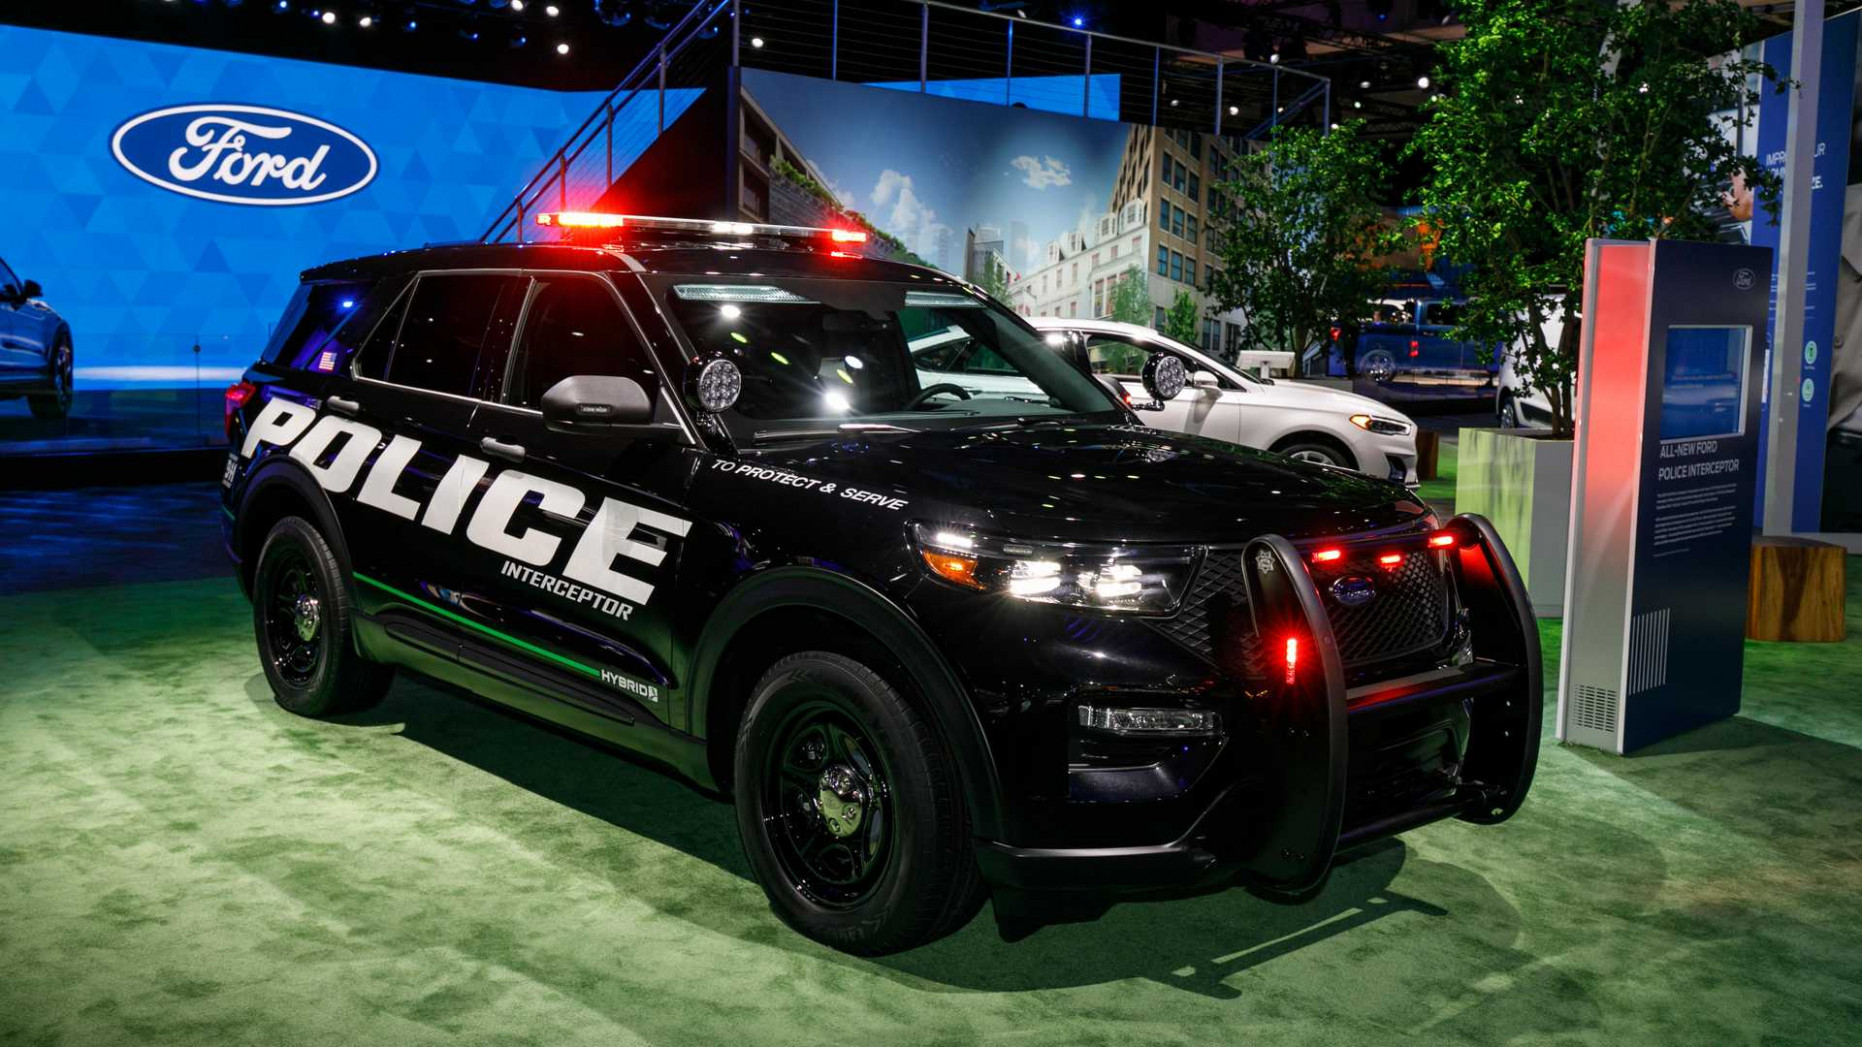 Photos 2022 Ford Police Interceptor Utility Specs